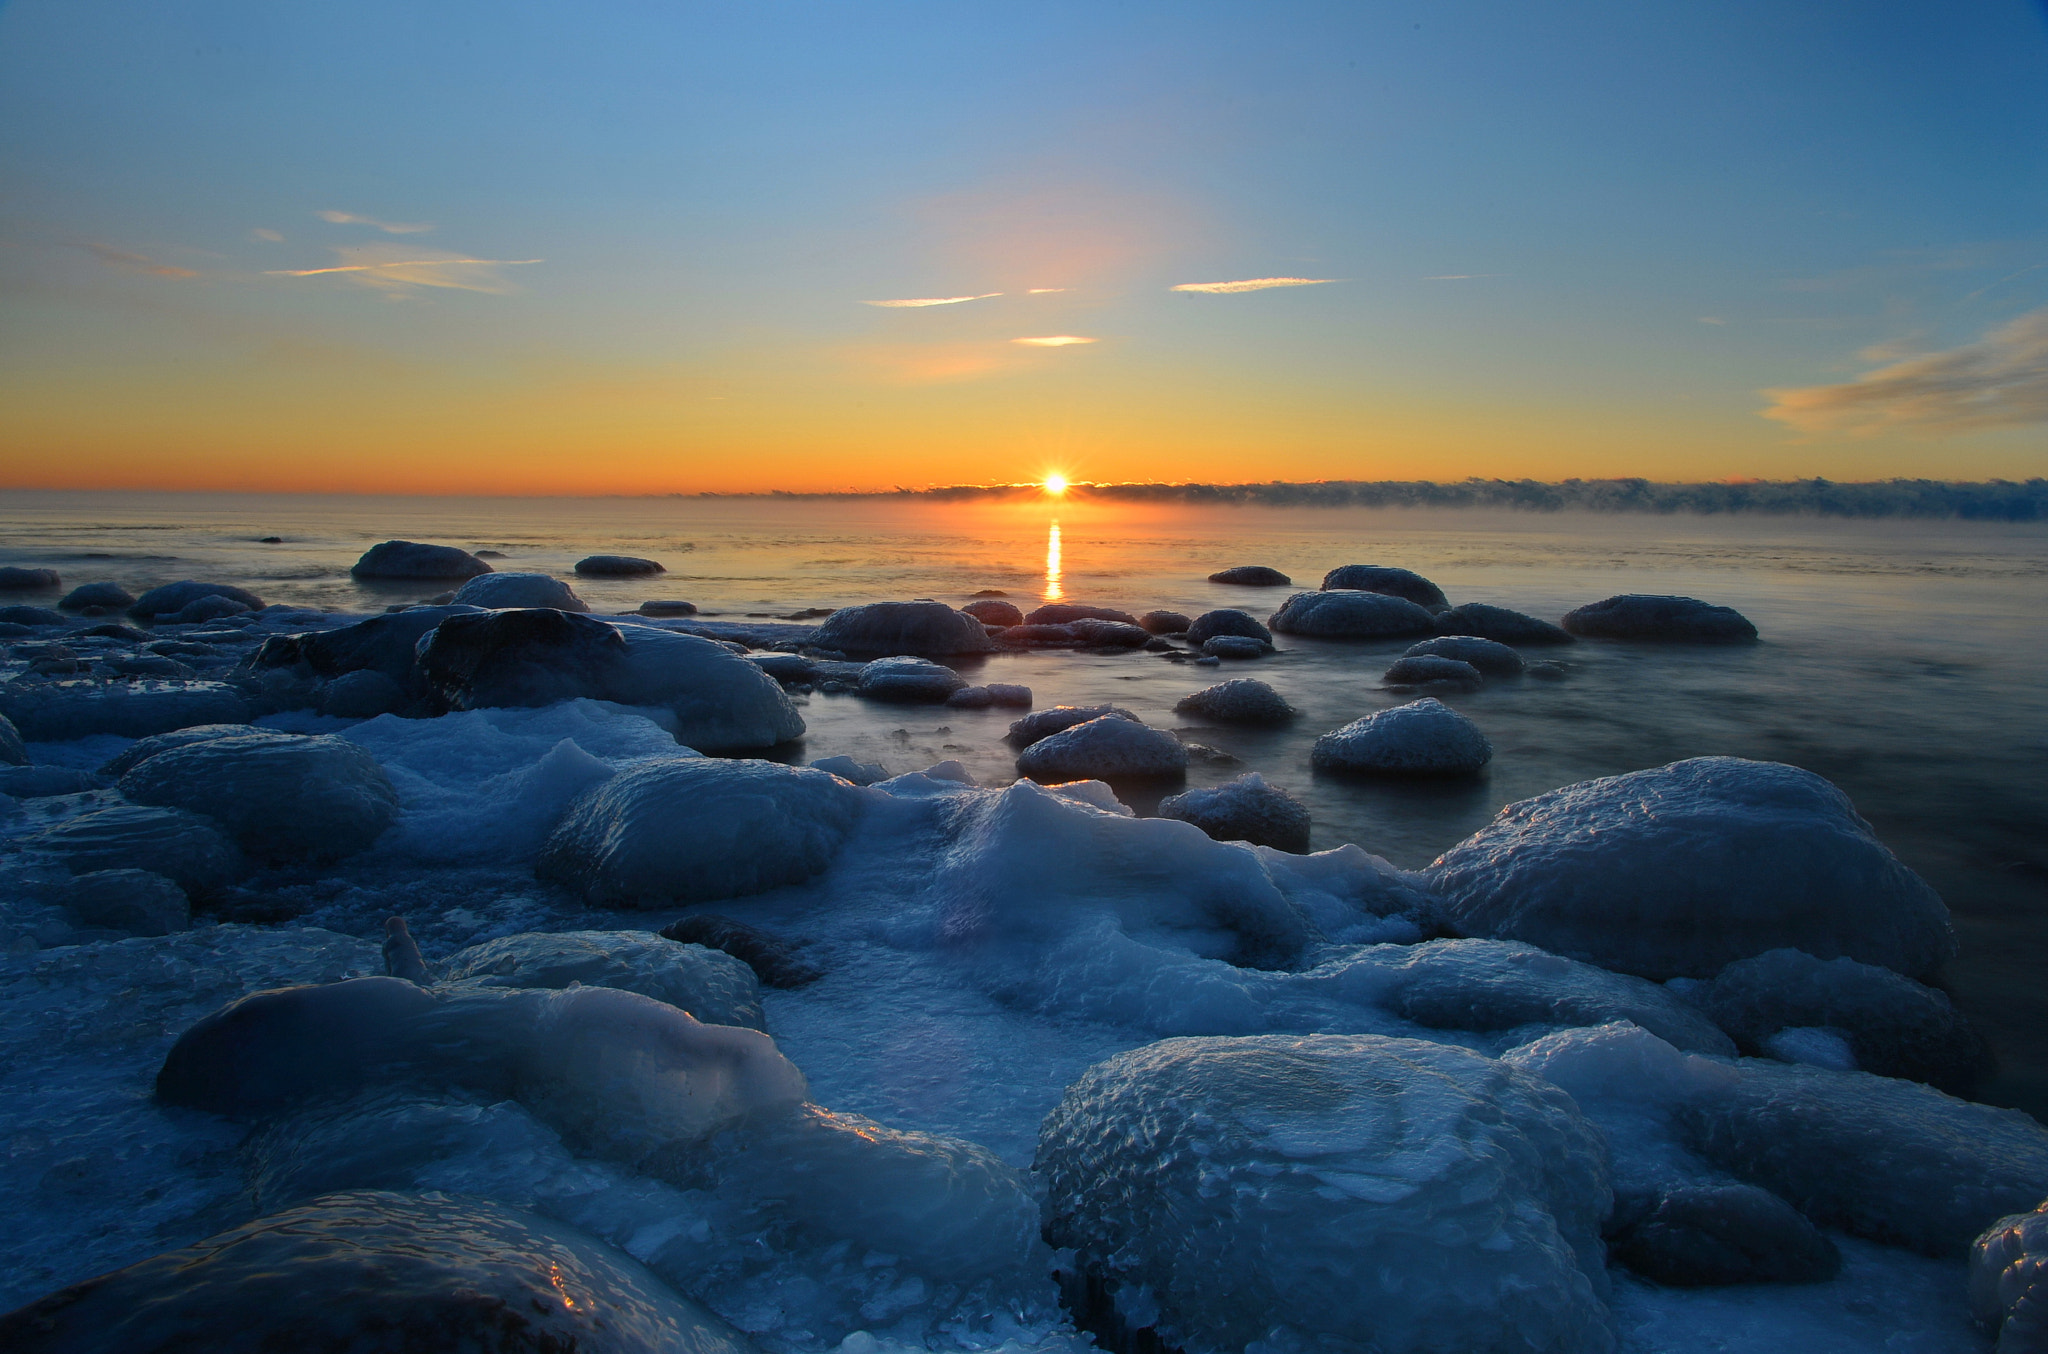 Photograph Cold Sunrise(close to -27C) by AZ Imaging on 500px